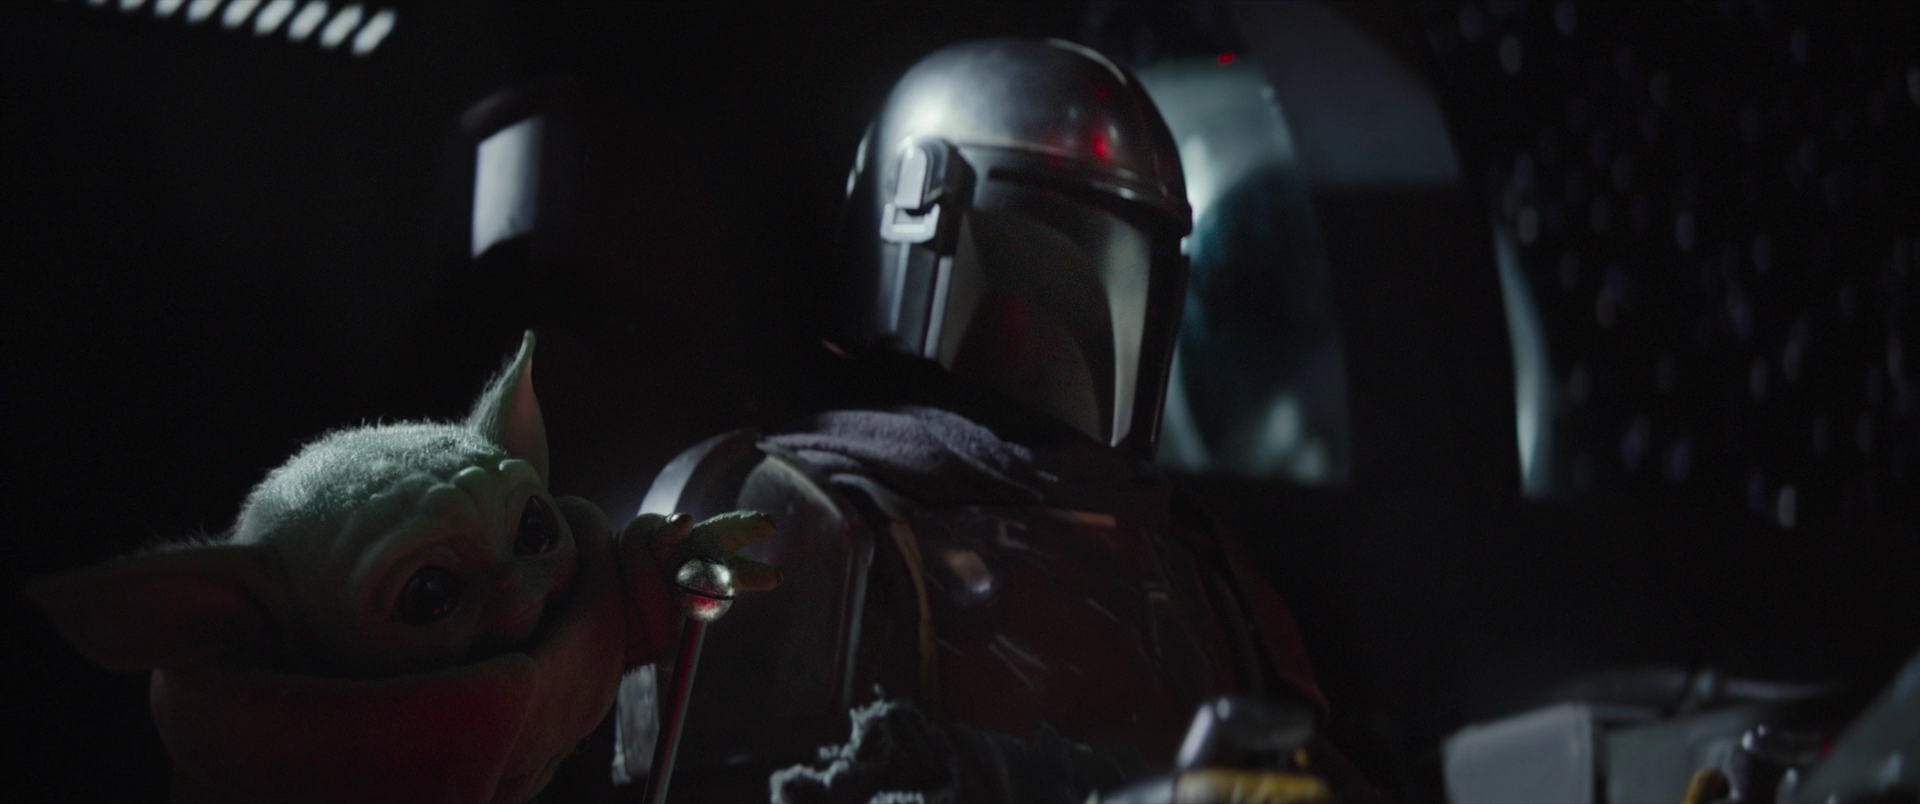 The.Mandalorian.S01E03.1080p.WEB.H264-PETRiFiED.mkv0144